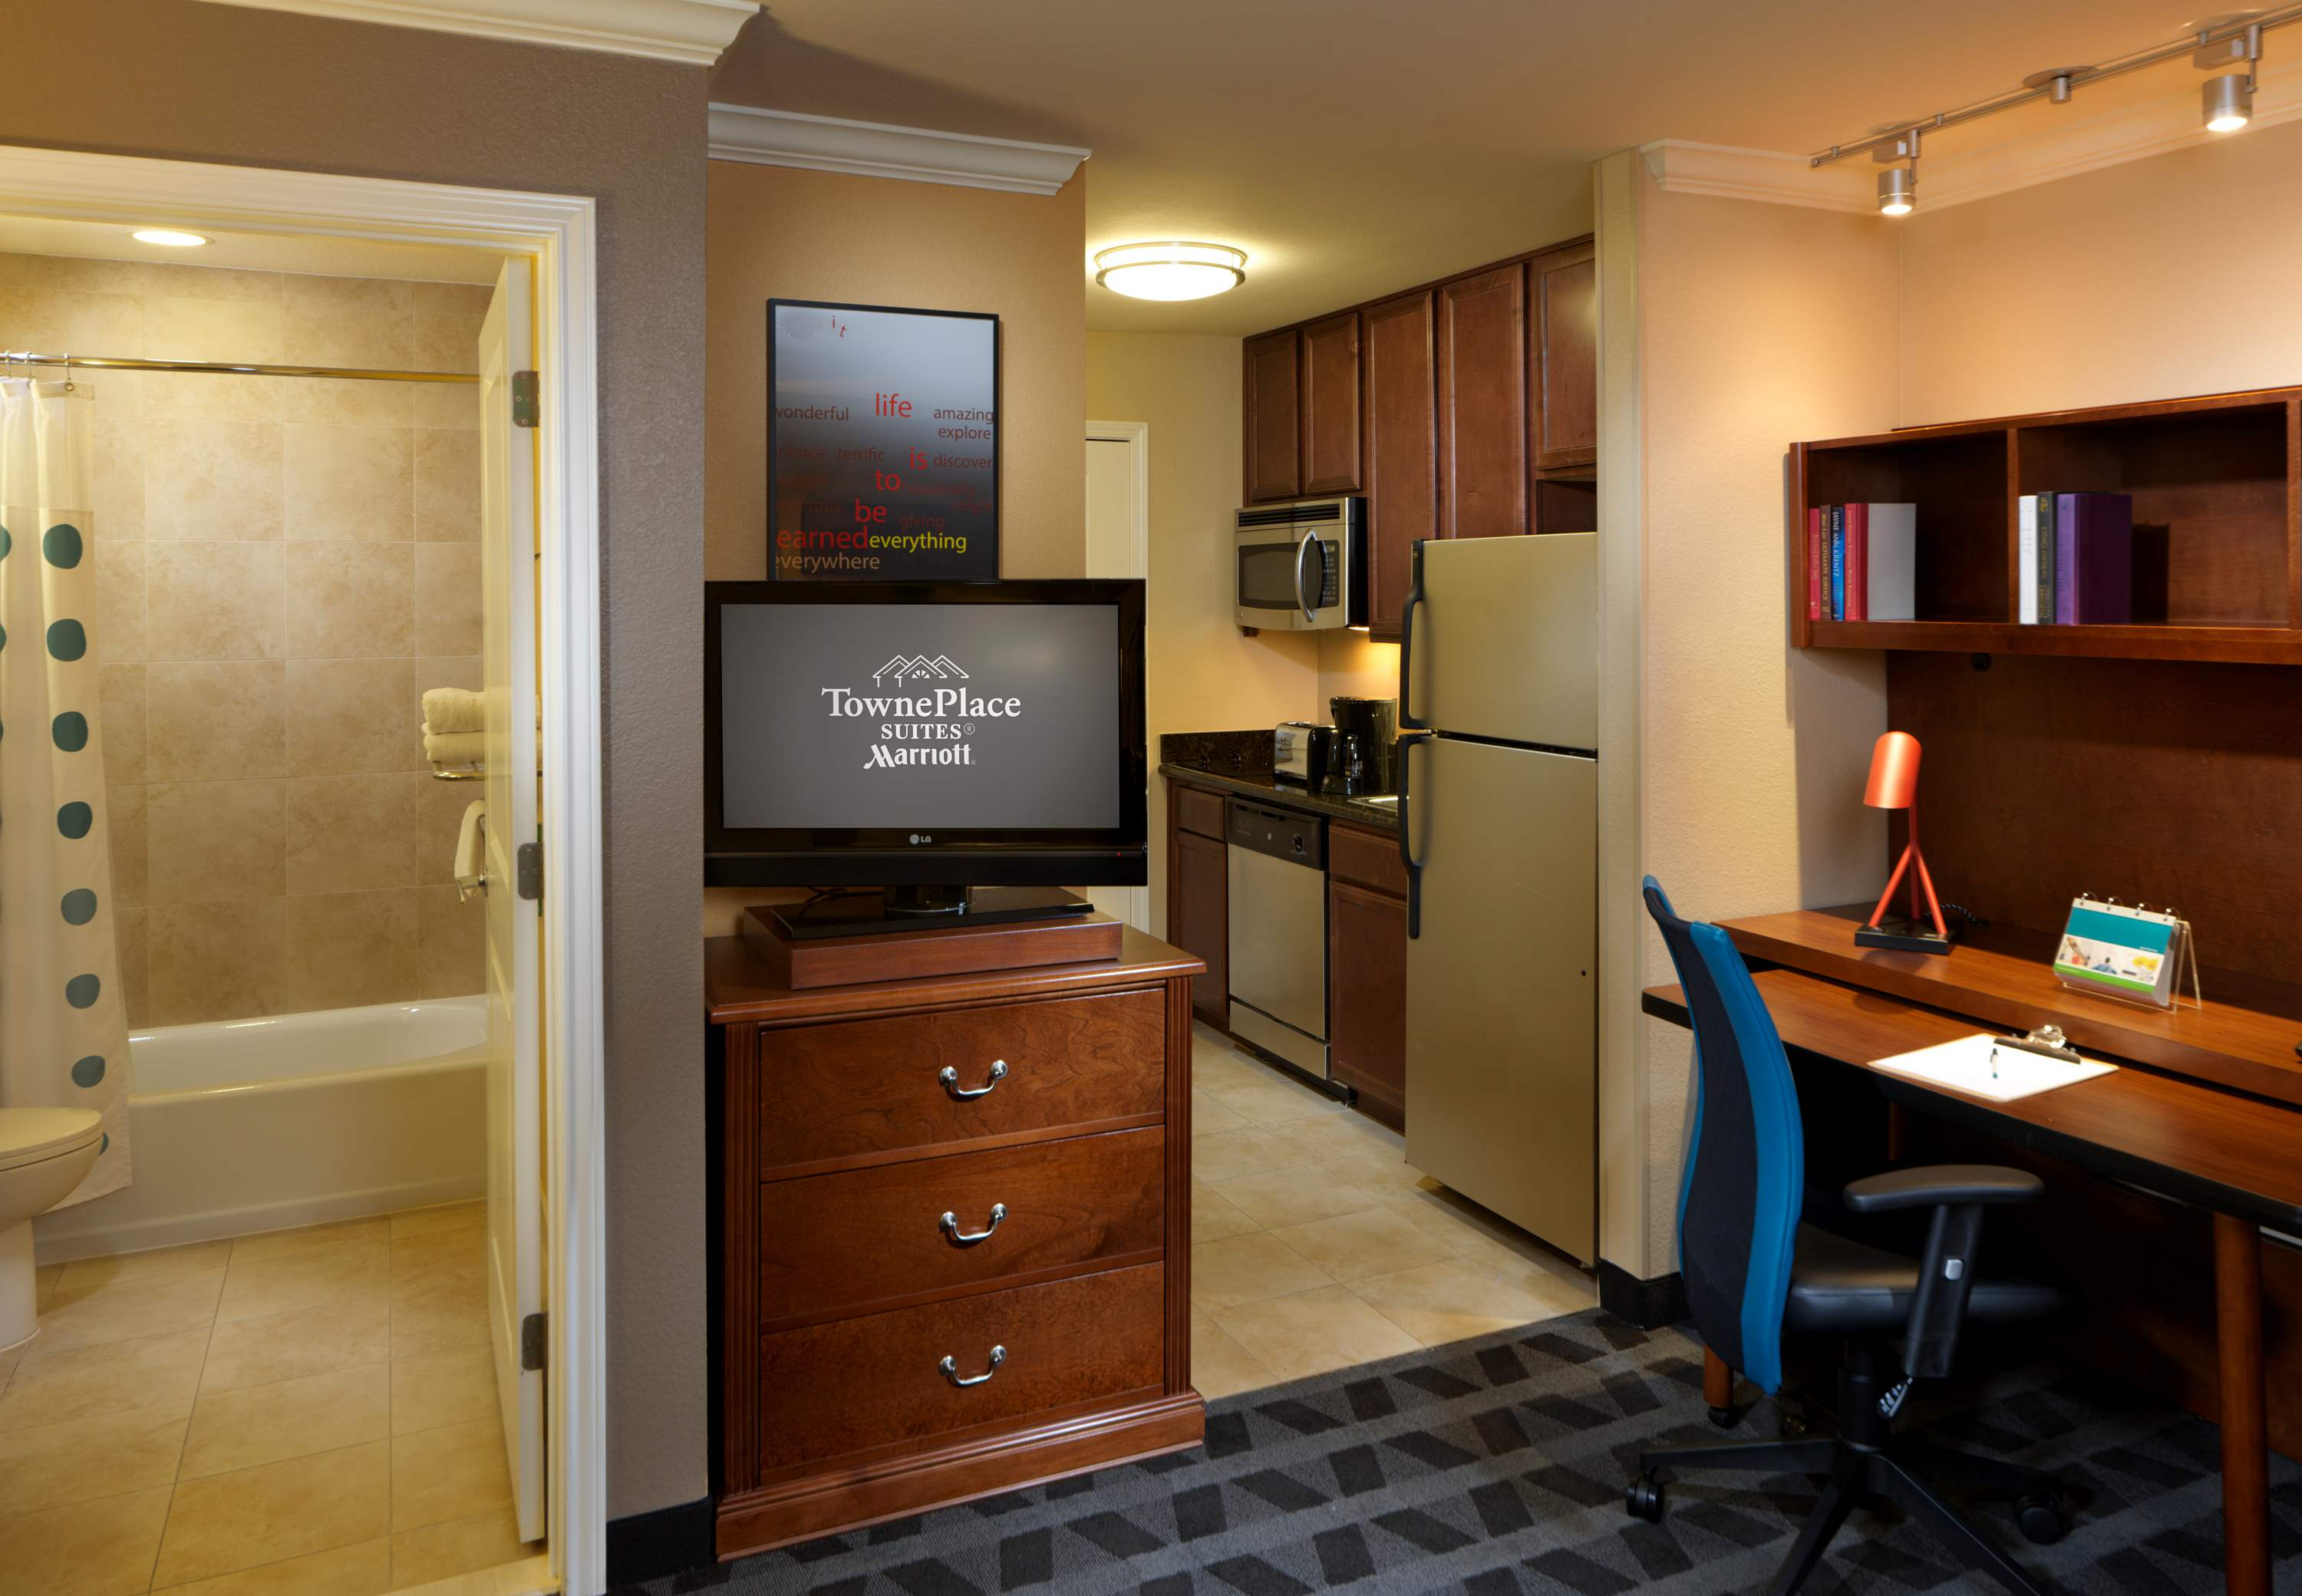 TownePlace Suites by Marriott Houston North/Shenandoah image 2